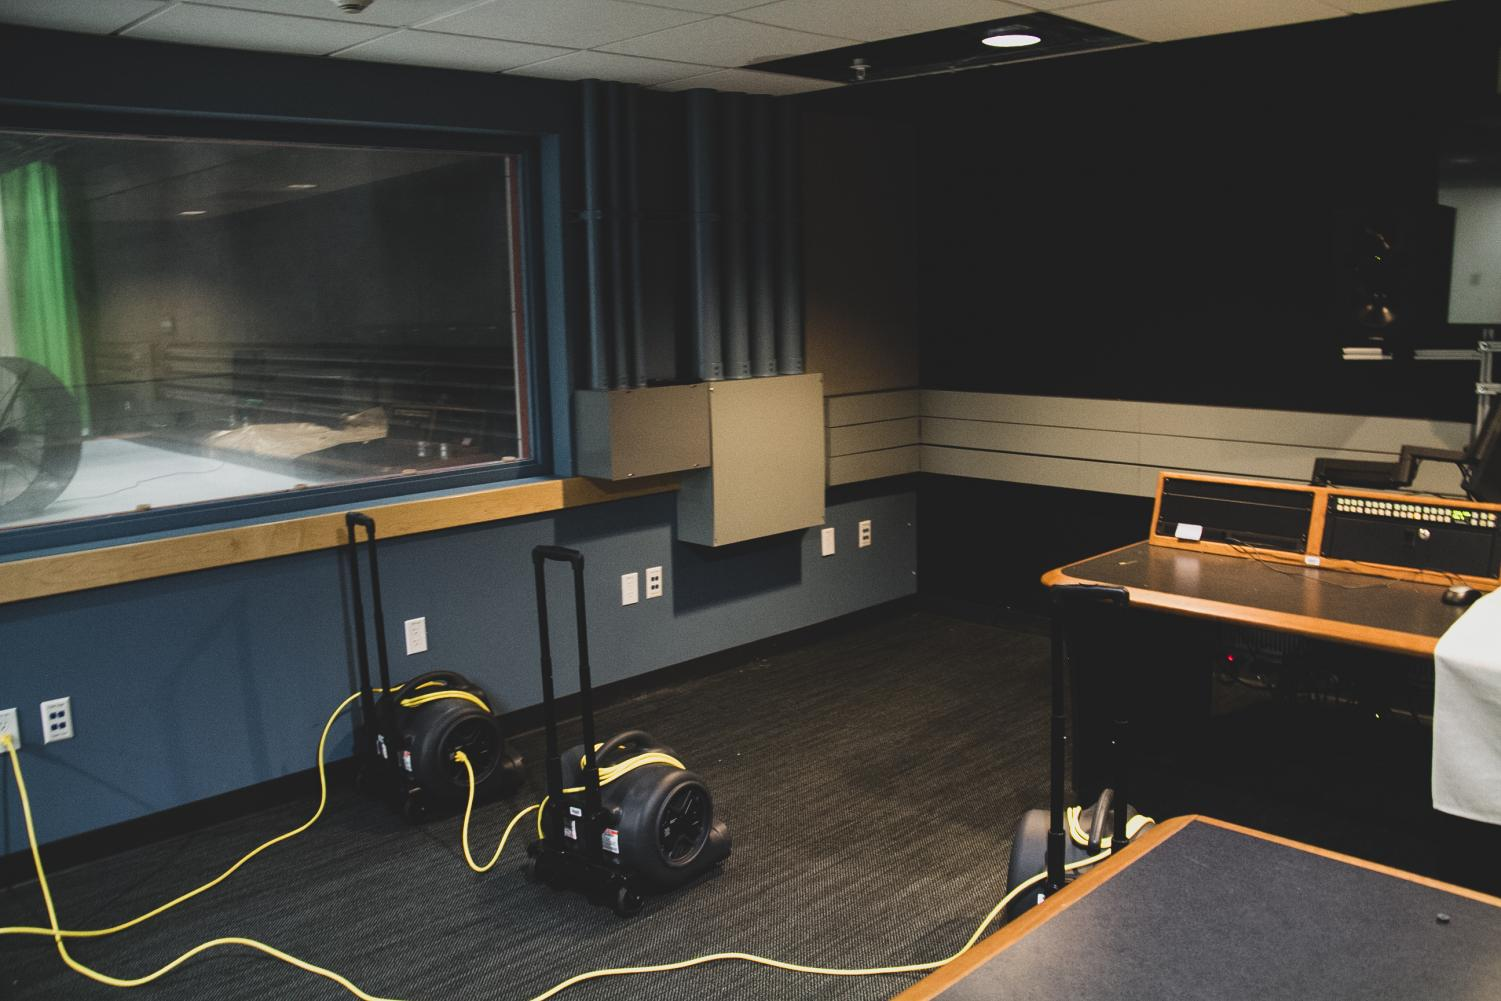 The weekly production of Newscene had to be moved from its studio and control room (pictured) due to a flood on Oct. 5. Photo by Harlan Burnett.